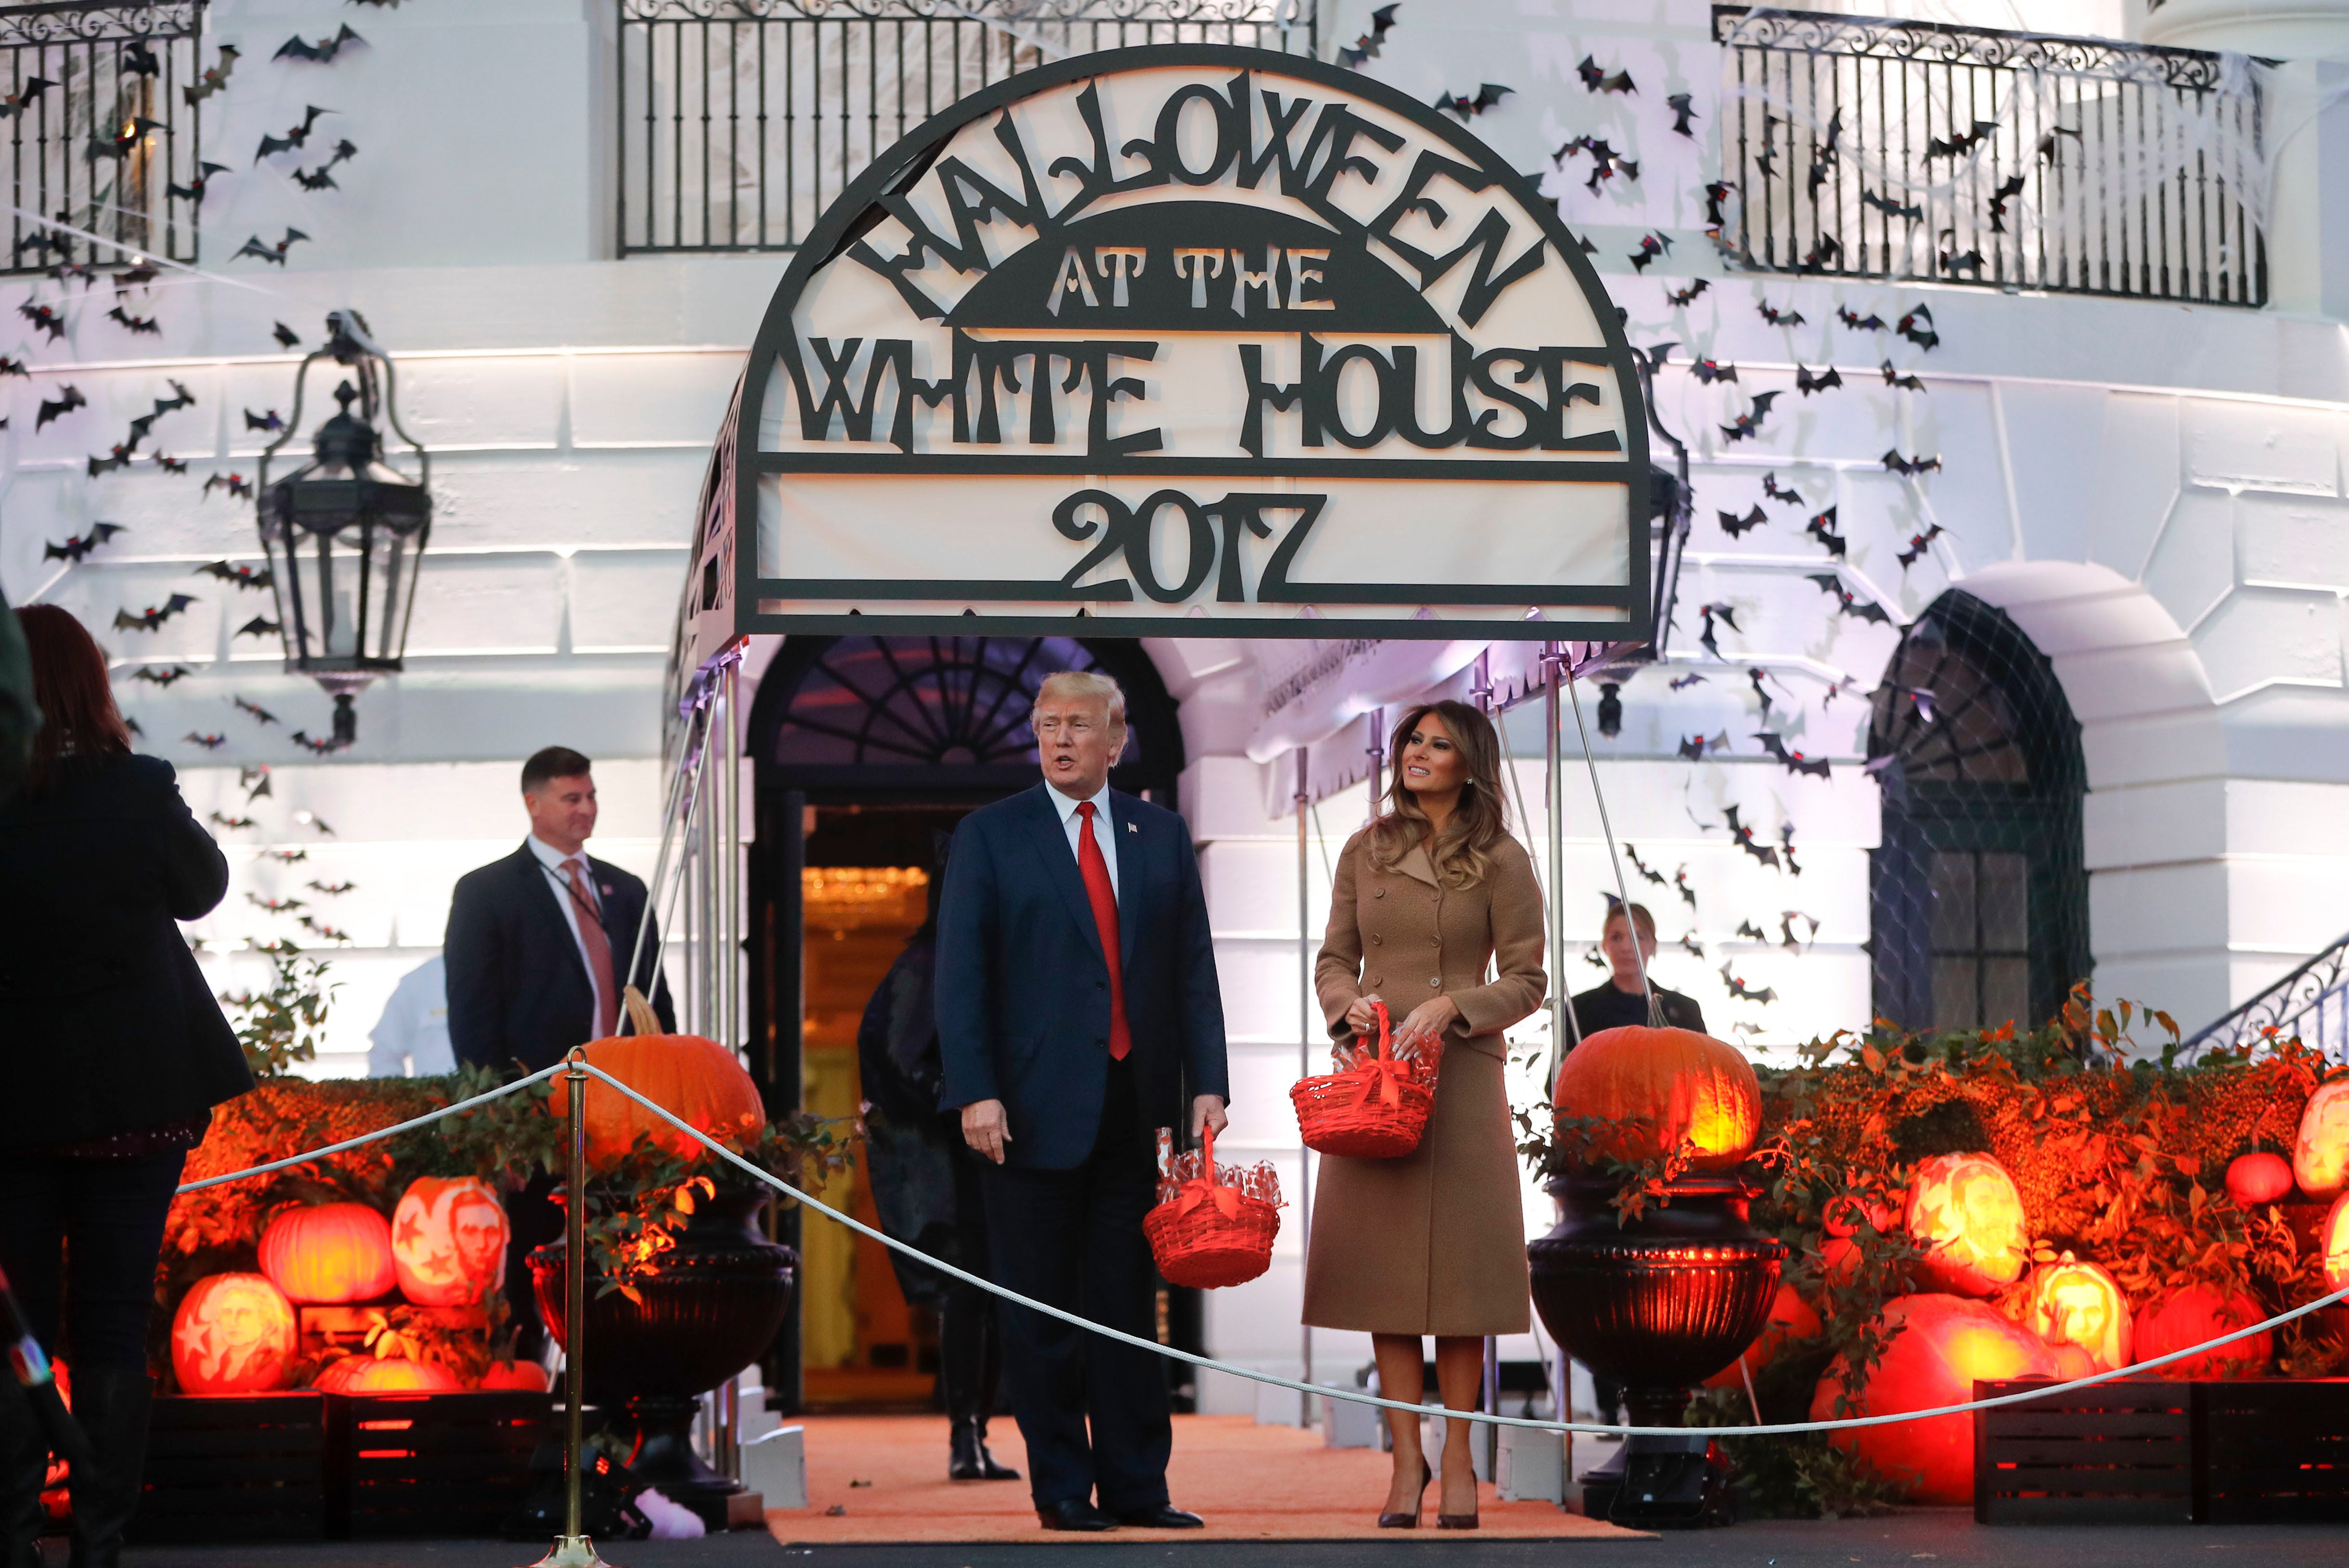 Trumps host second Halloween party at White House Sunday